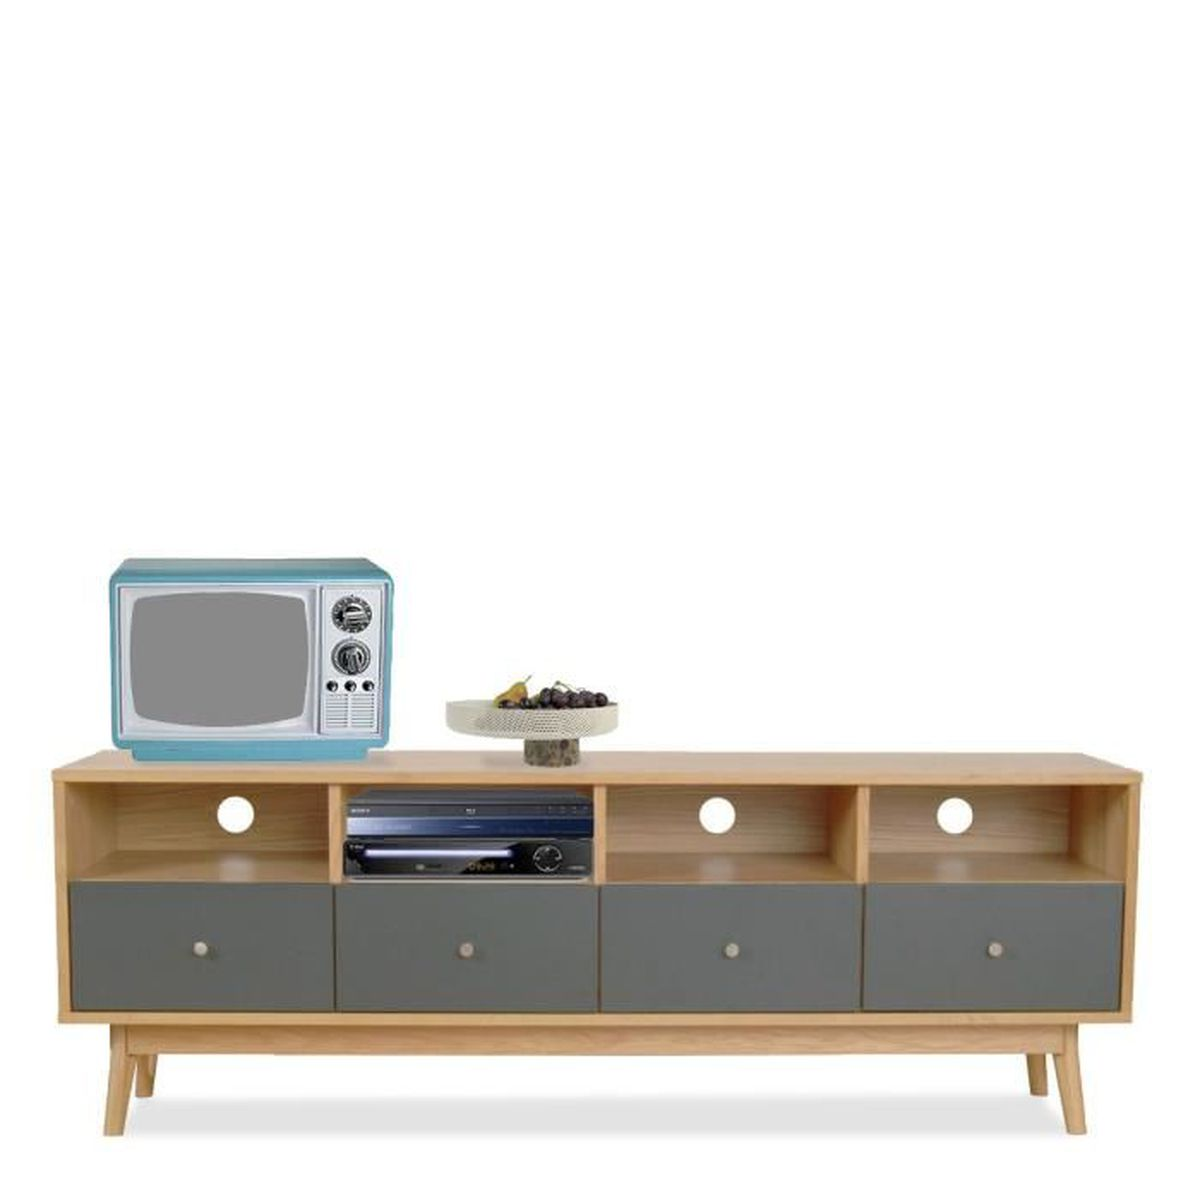 meuble tv design scandinave 4 tiroirs skoll couleur gris. Black Bedroom Furniture Sets. Home Design Ideas